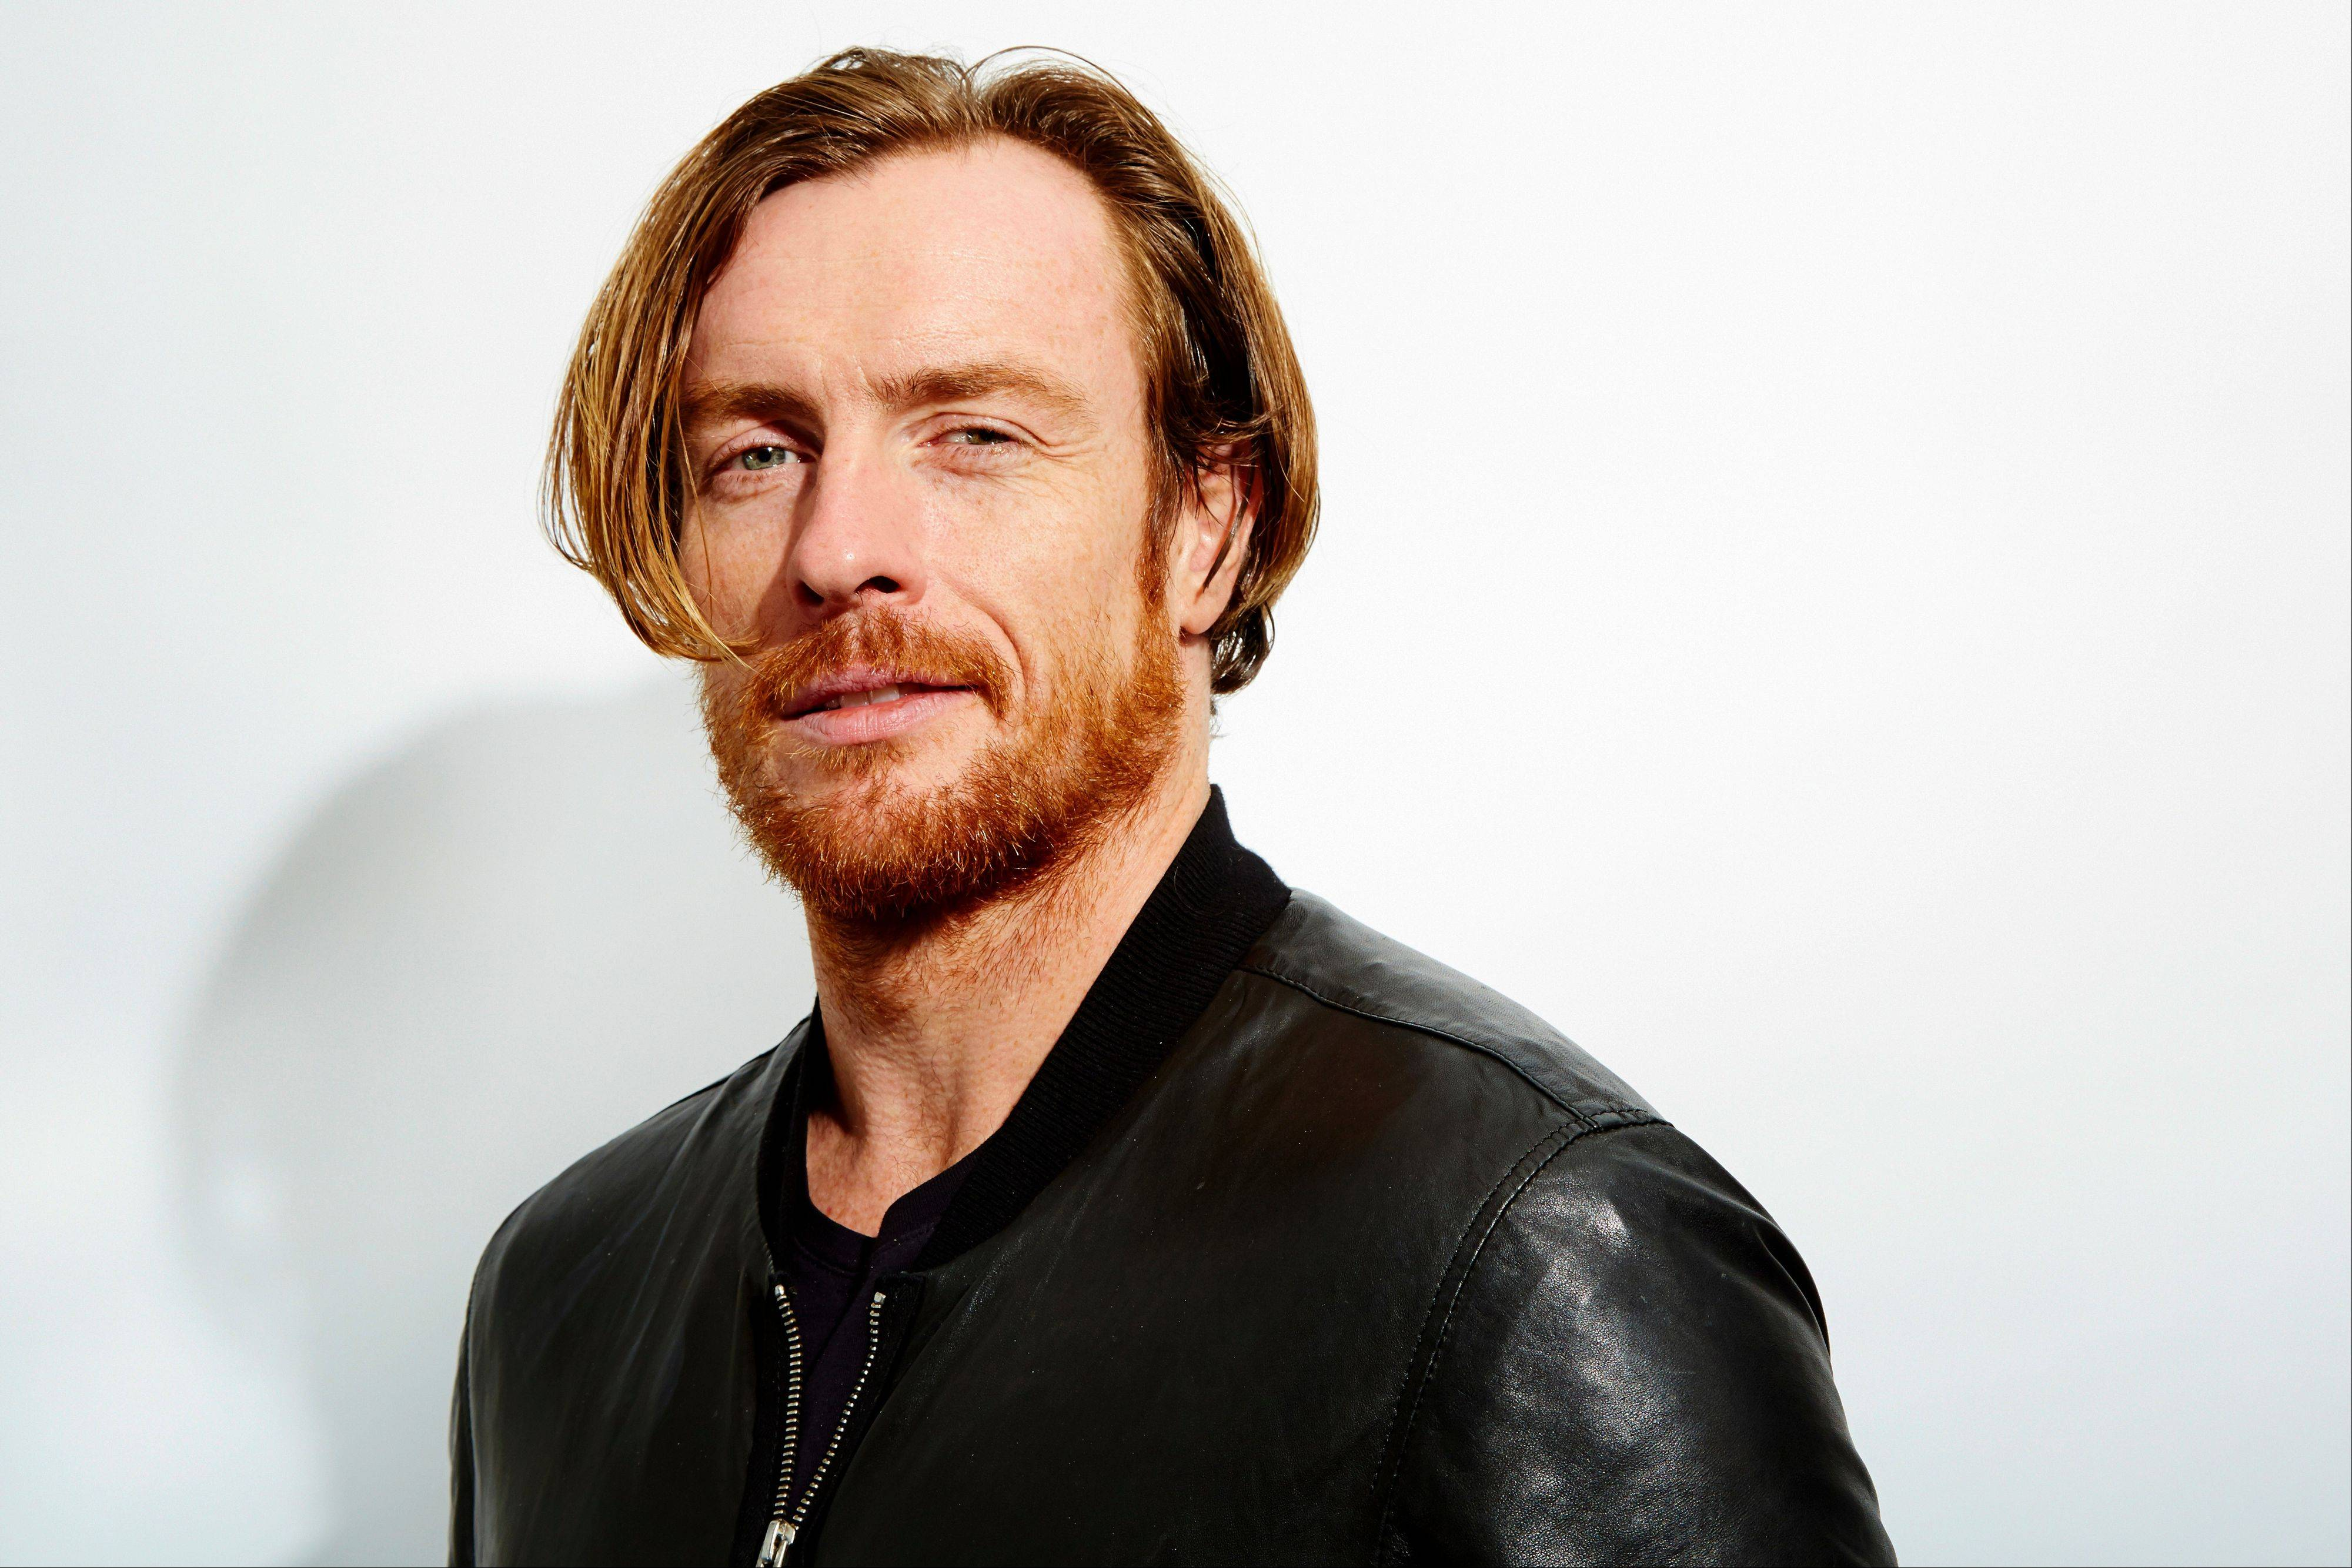 Actor Toby Stephens stars in �Black Sails,� premiering Saturday on Starz.